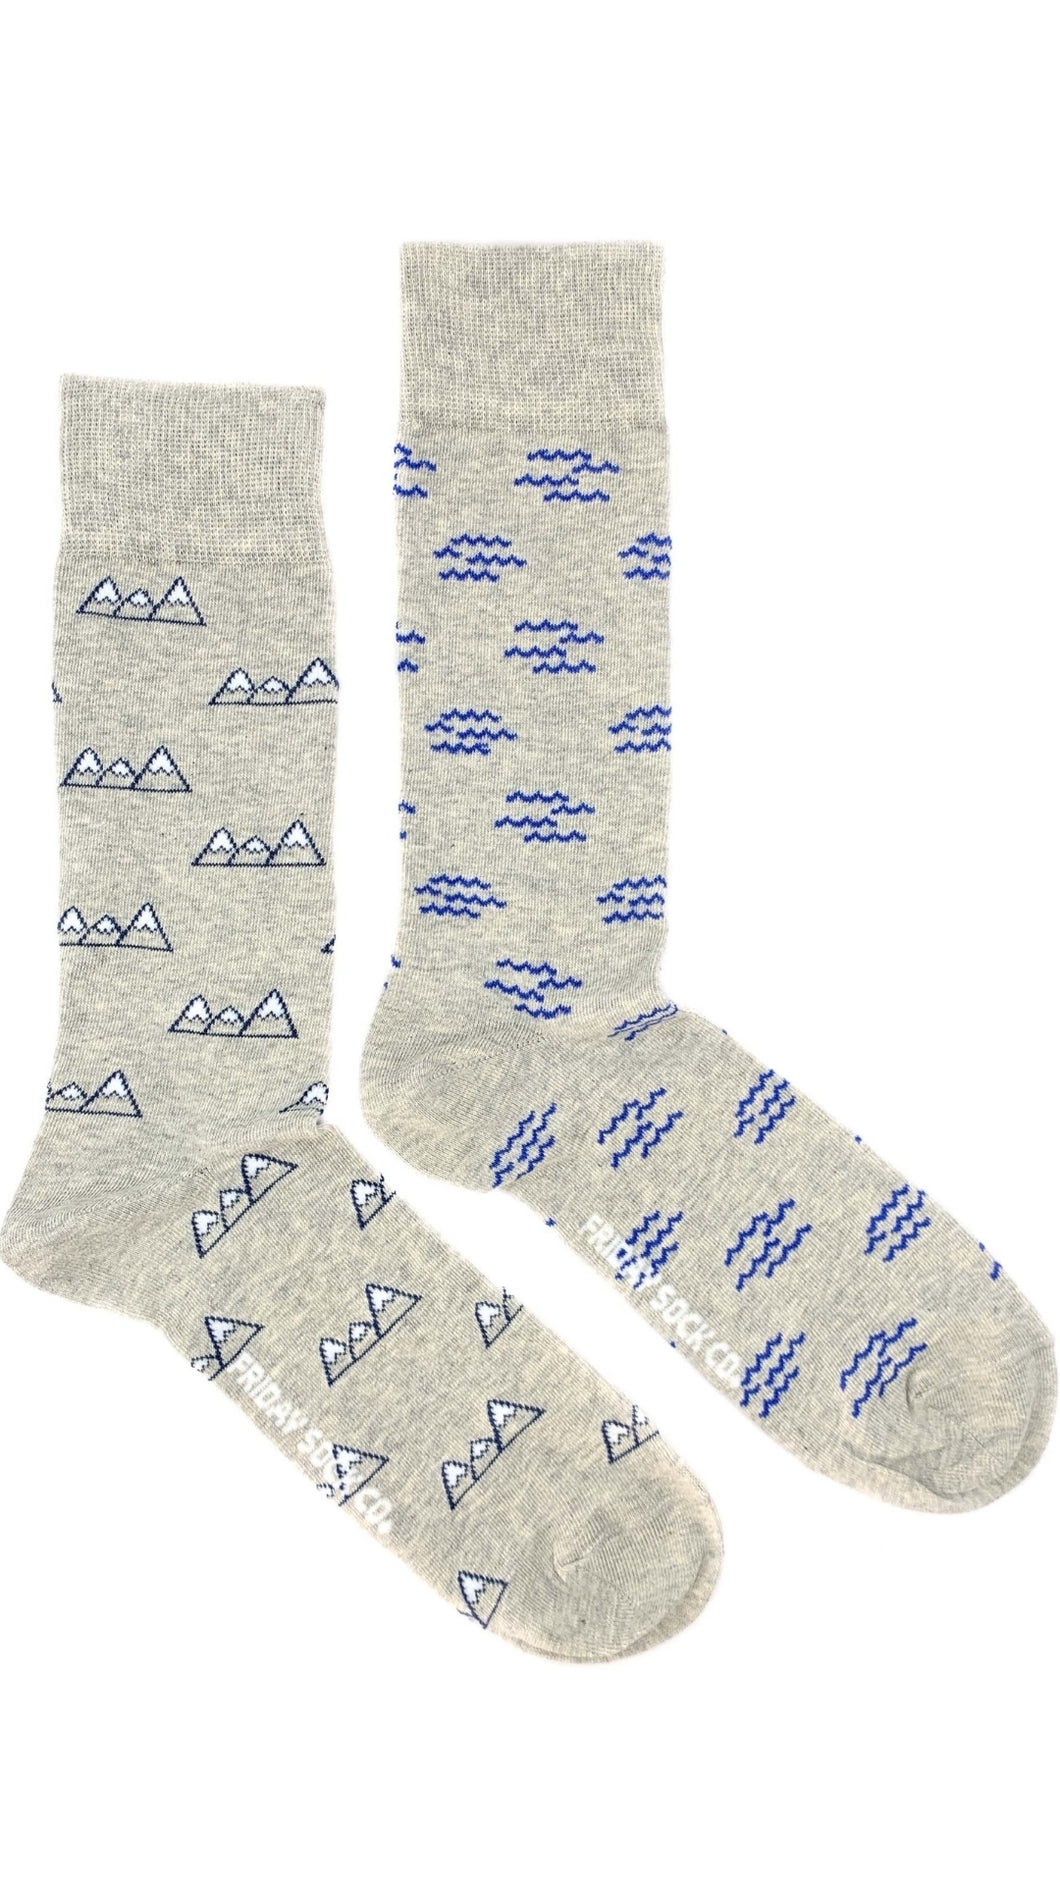 Mountains & Waves Mismatched Socks